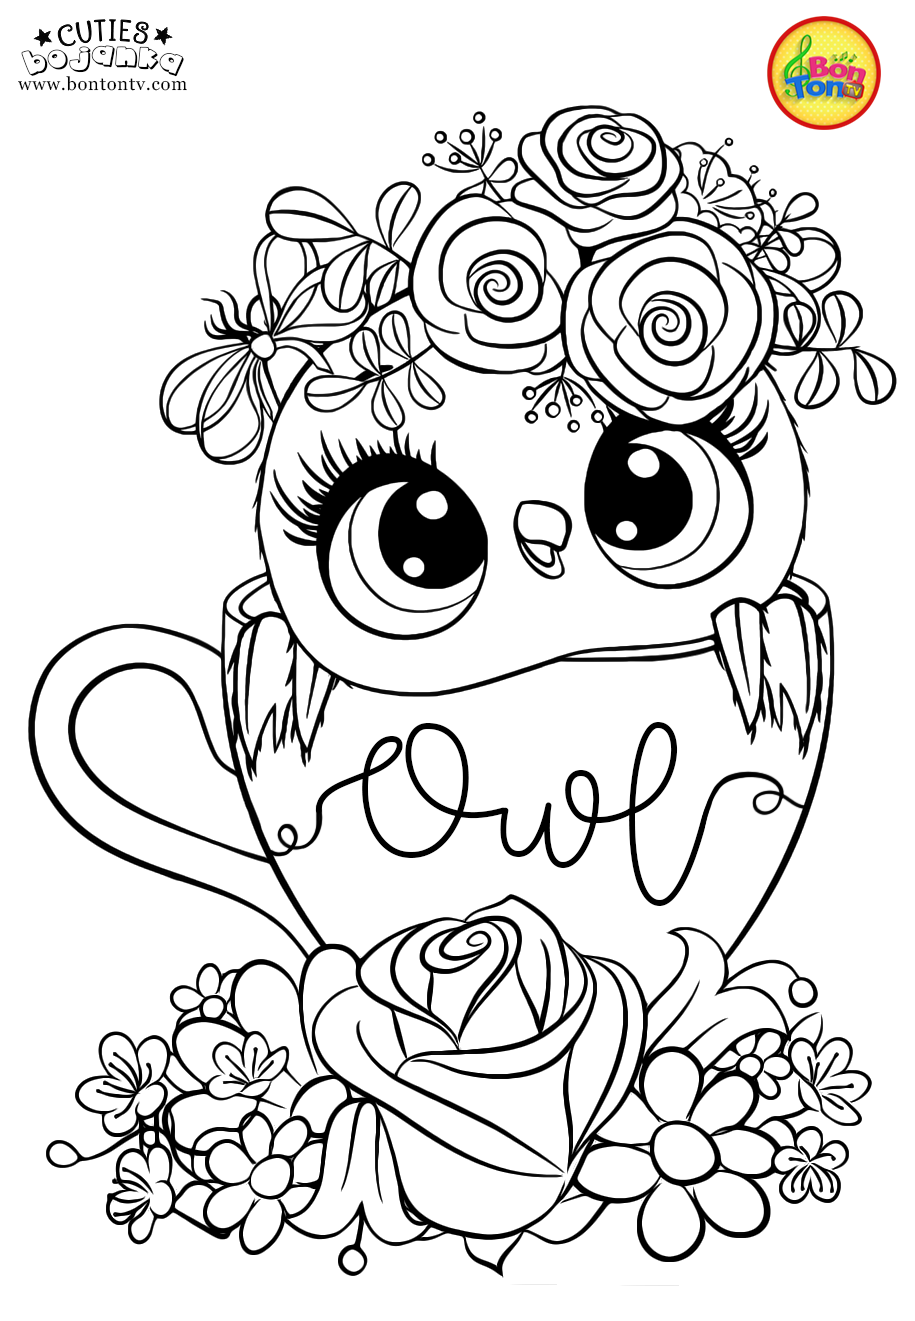 Cuties Coloring Pages For Kids Free Preschool Printables Slatkice Bojanke Cute Animal Coloring Book Owl Coloring Pages Coloring Books Cute Coloring Pages